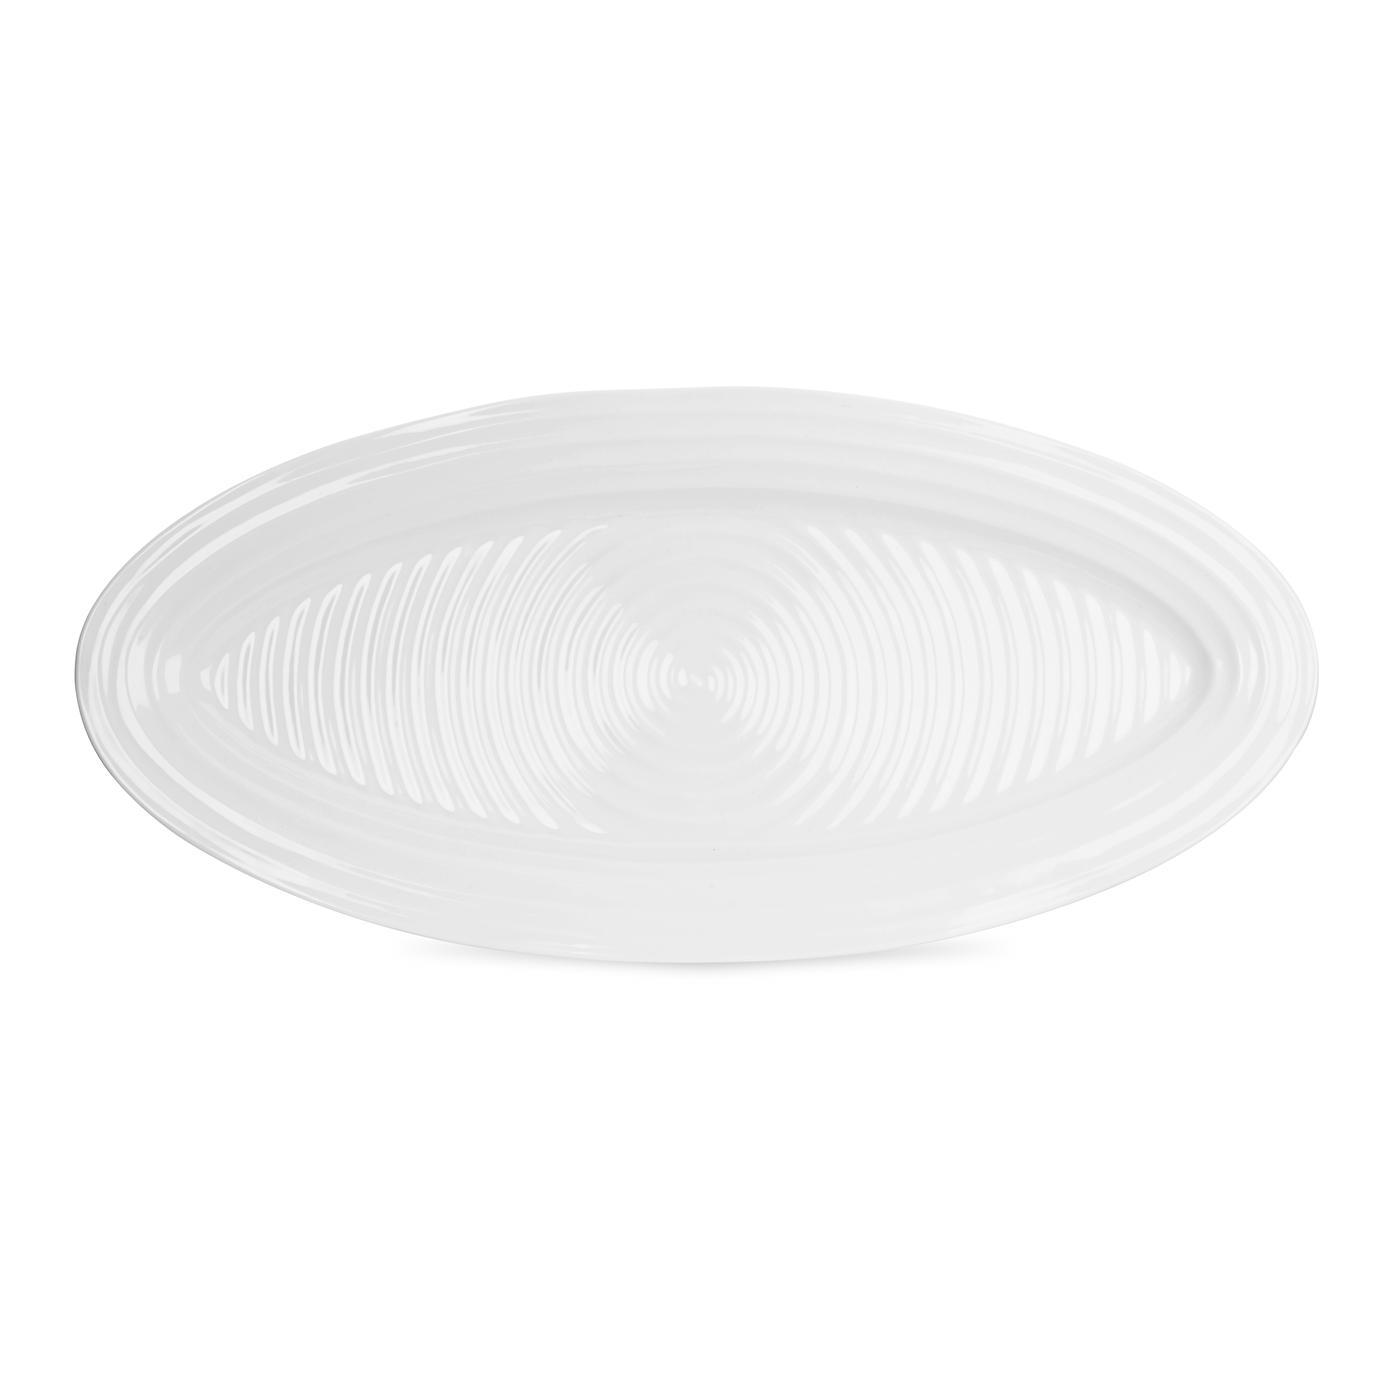 포트메리온 '소피 콘란' 피쉬 접시 Sophie Conran for Portmeirion White 21 Inch Fish Platter